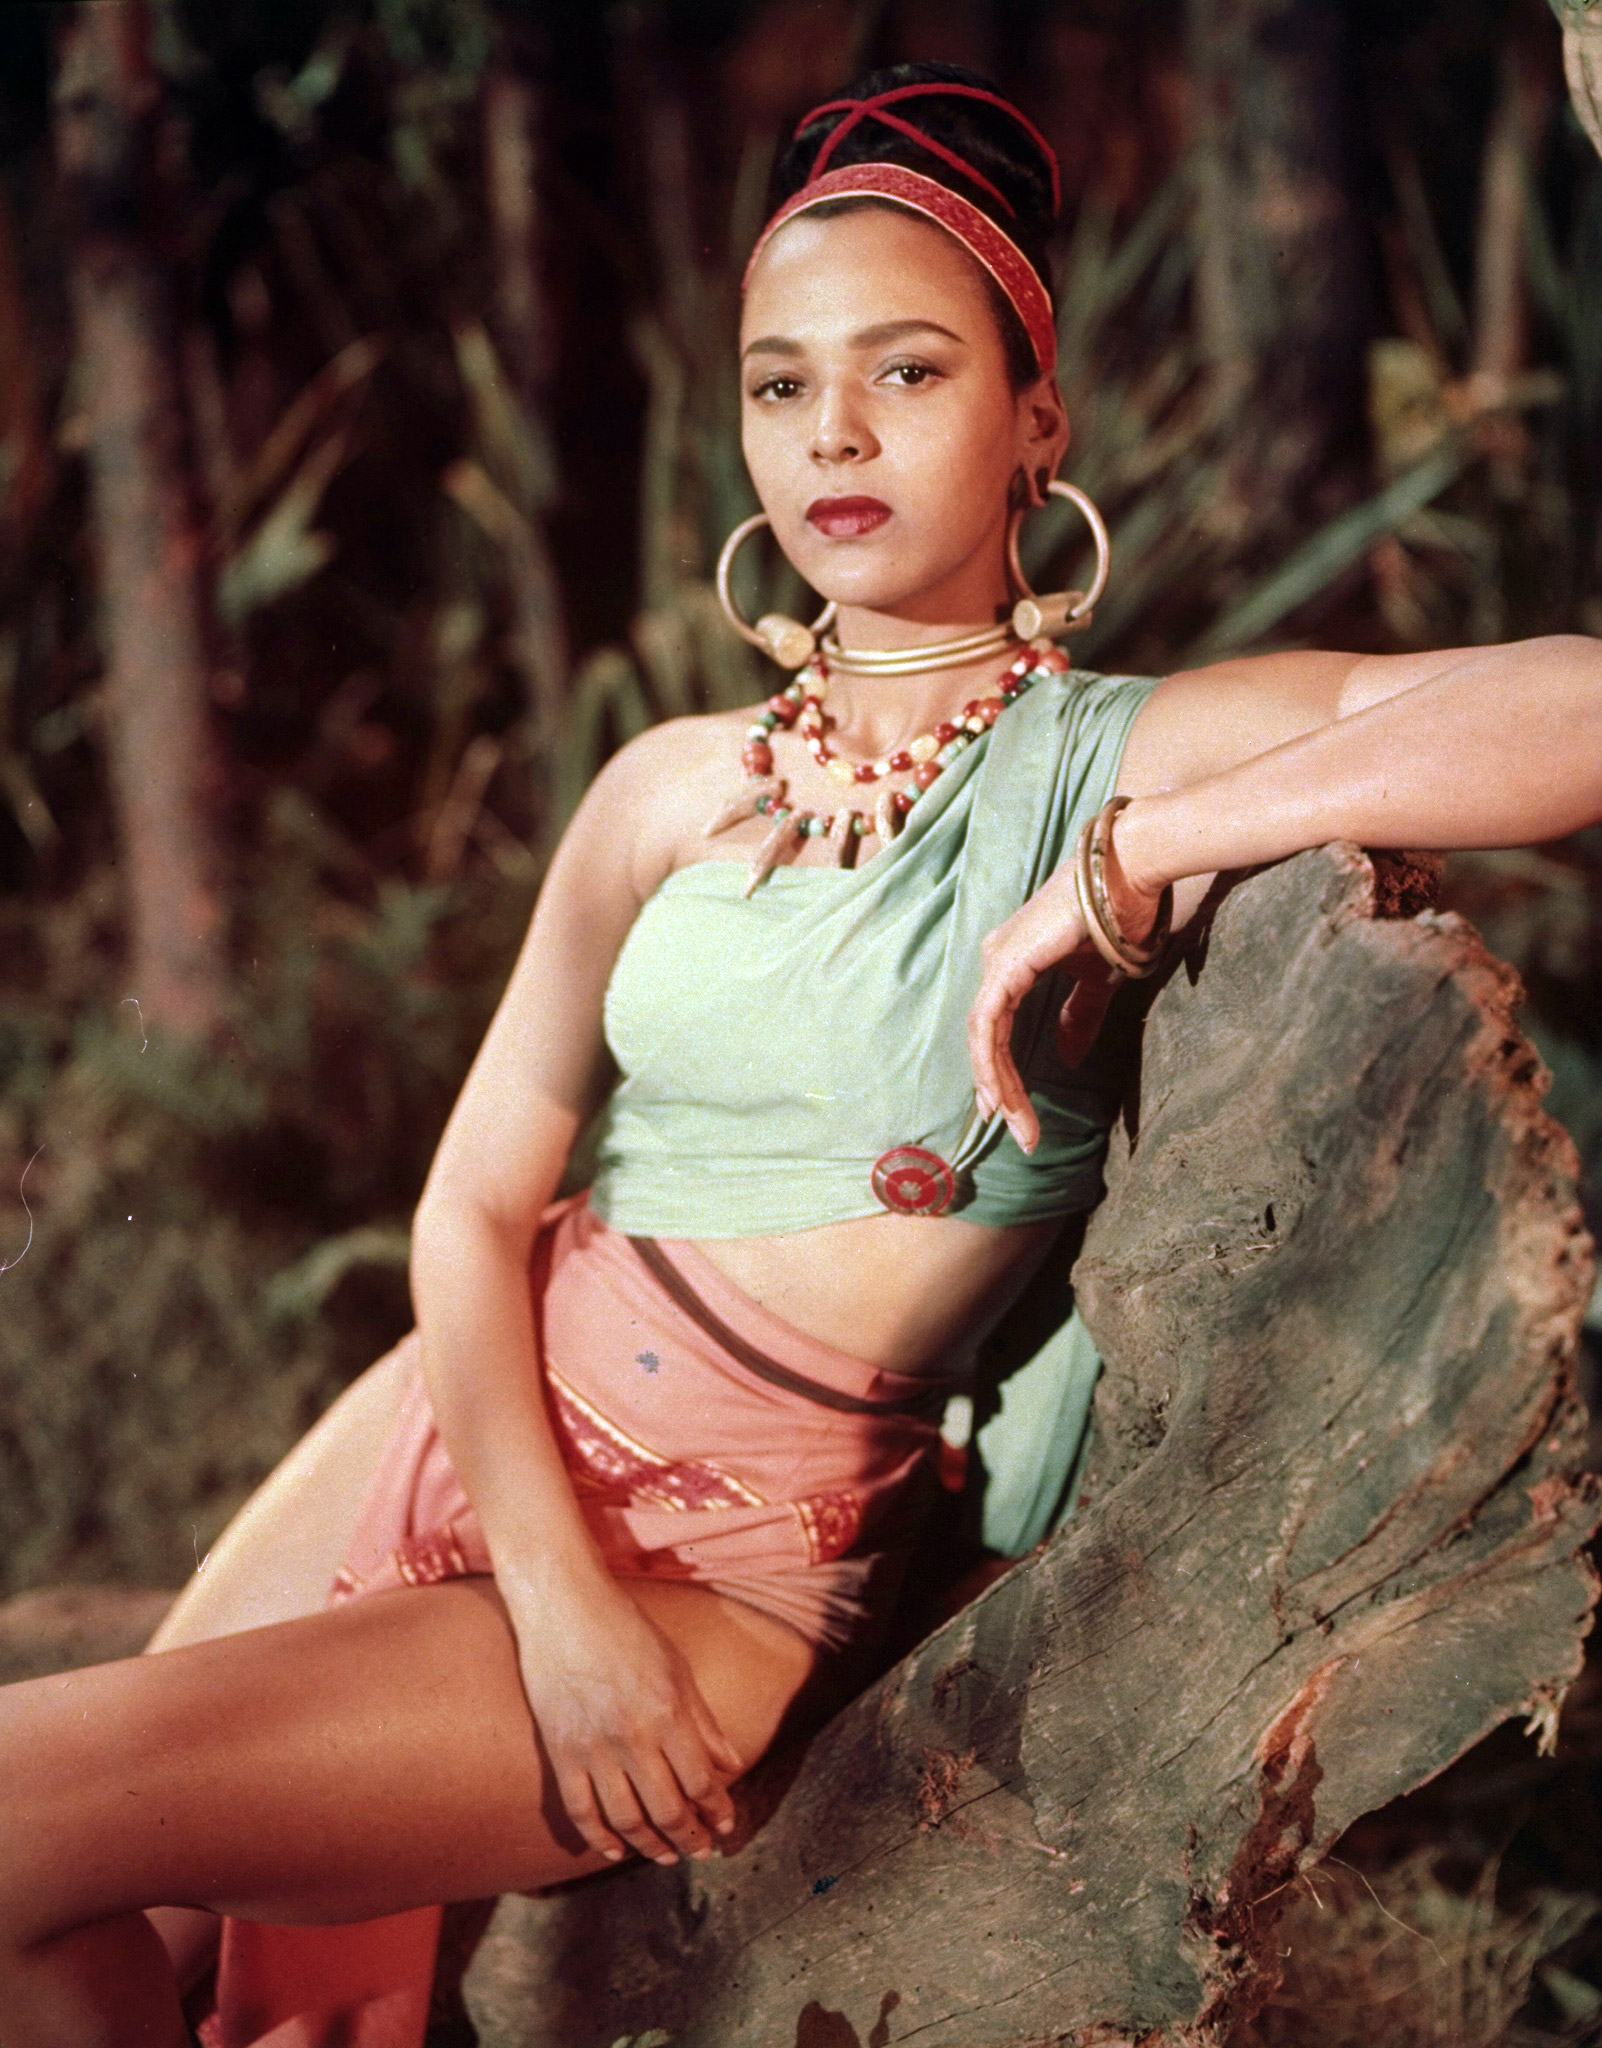 """Dress as Dorothy Dandridge as Melmendi in """"Tarzan's Peril"""" (1951) with a colorful one-shouldered crop top, revealing skirt, hoop earrings and large beaded necklace."""